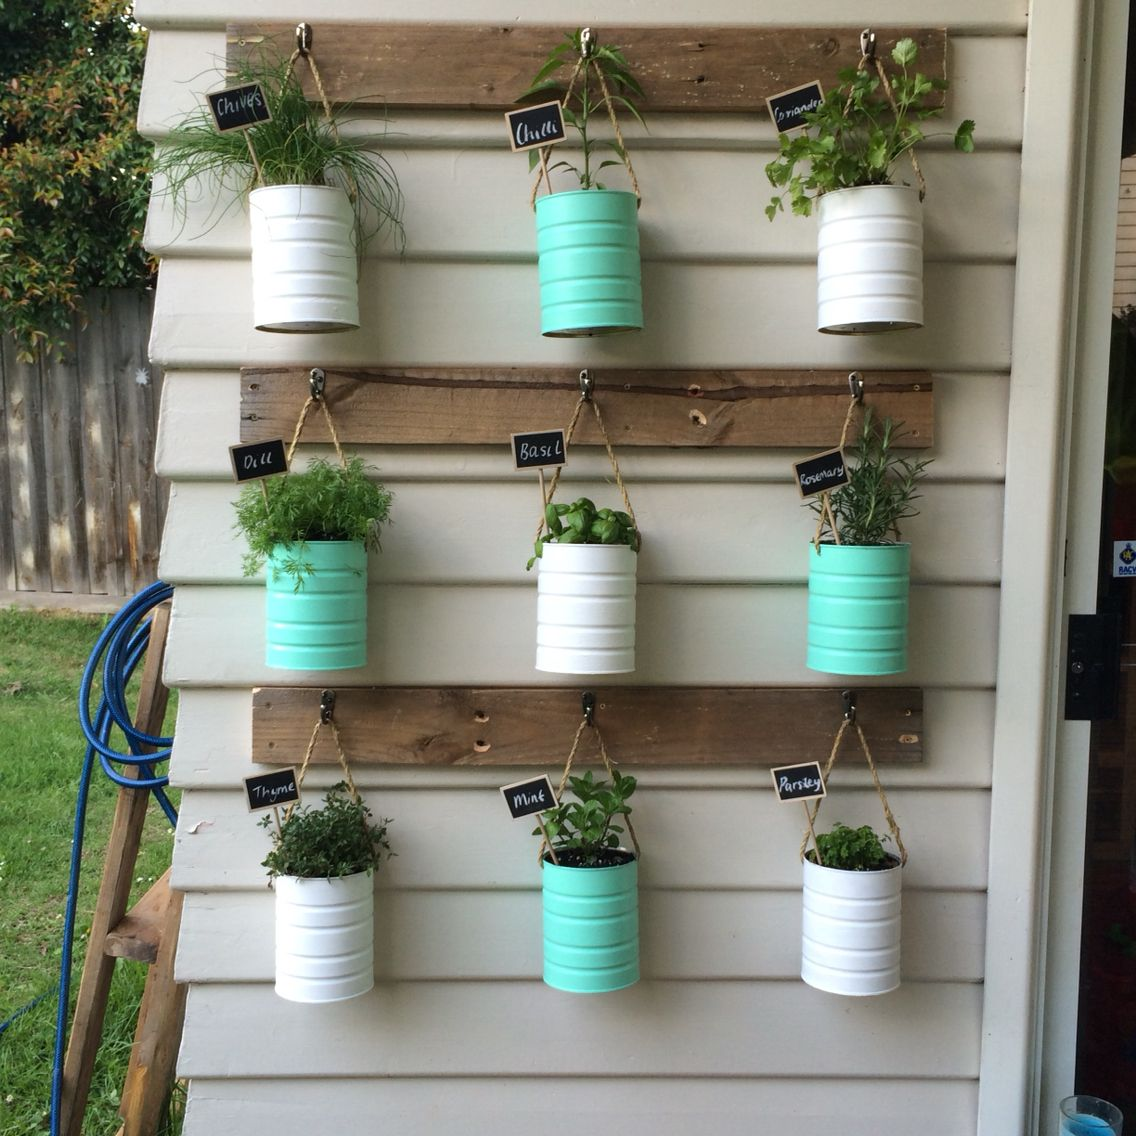 Vertical Herb Garden Ideas: Formula Tins Reused For Our Herb Vertical Garden. Supplies